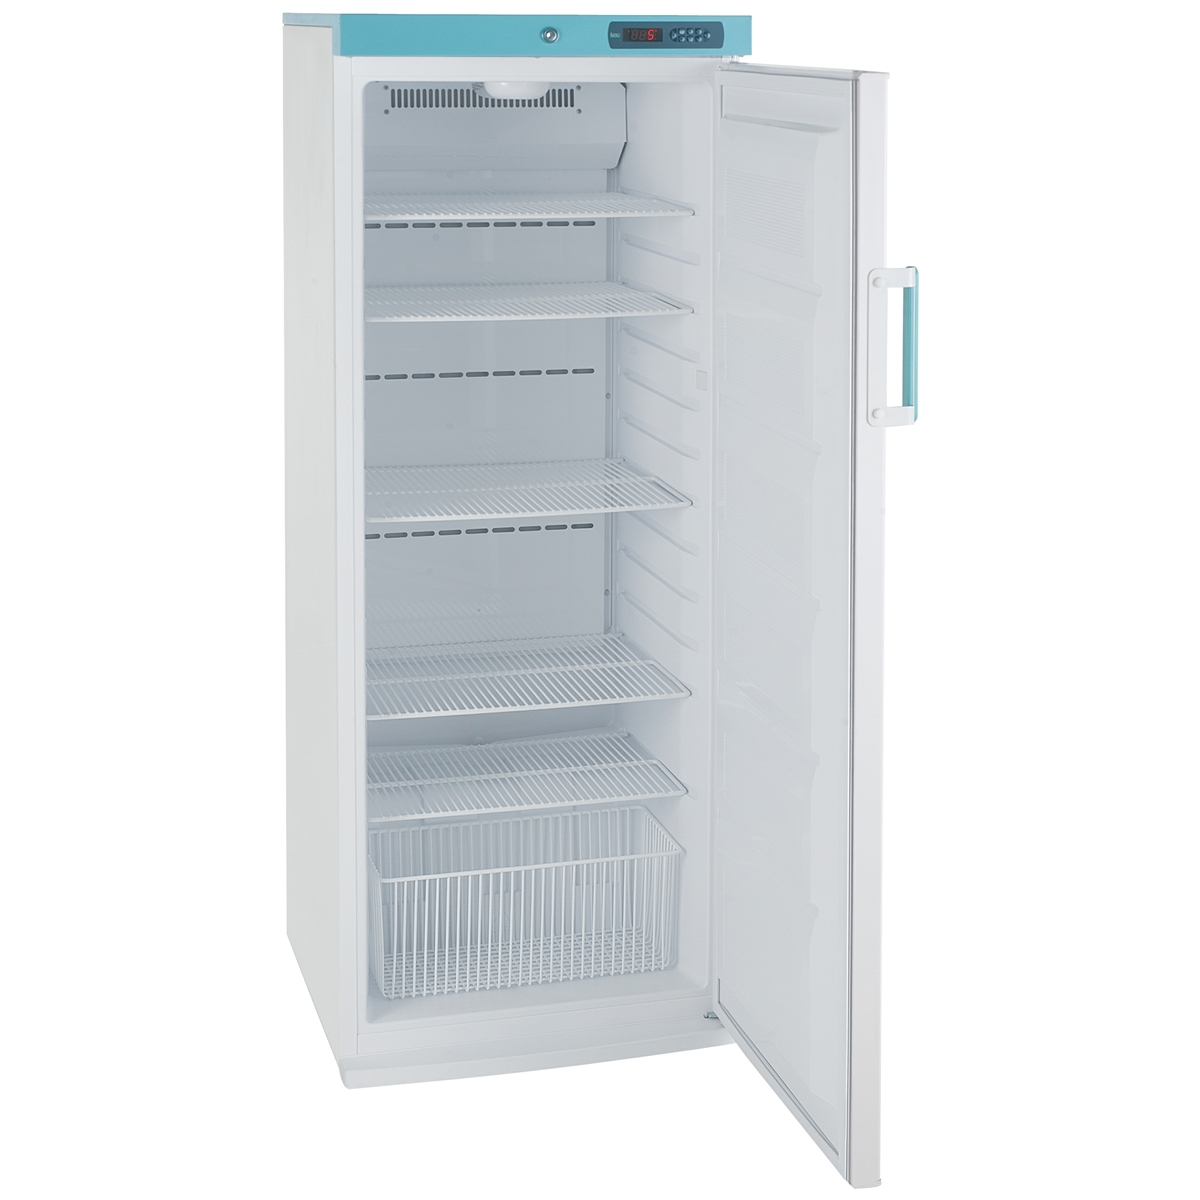 PSRC273UK Pharmacy Fridge - 273 litre